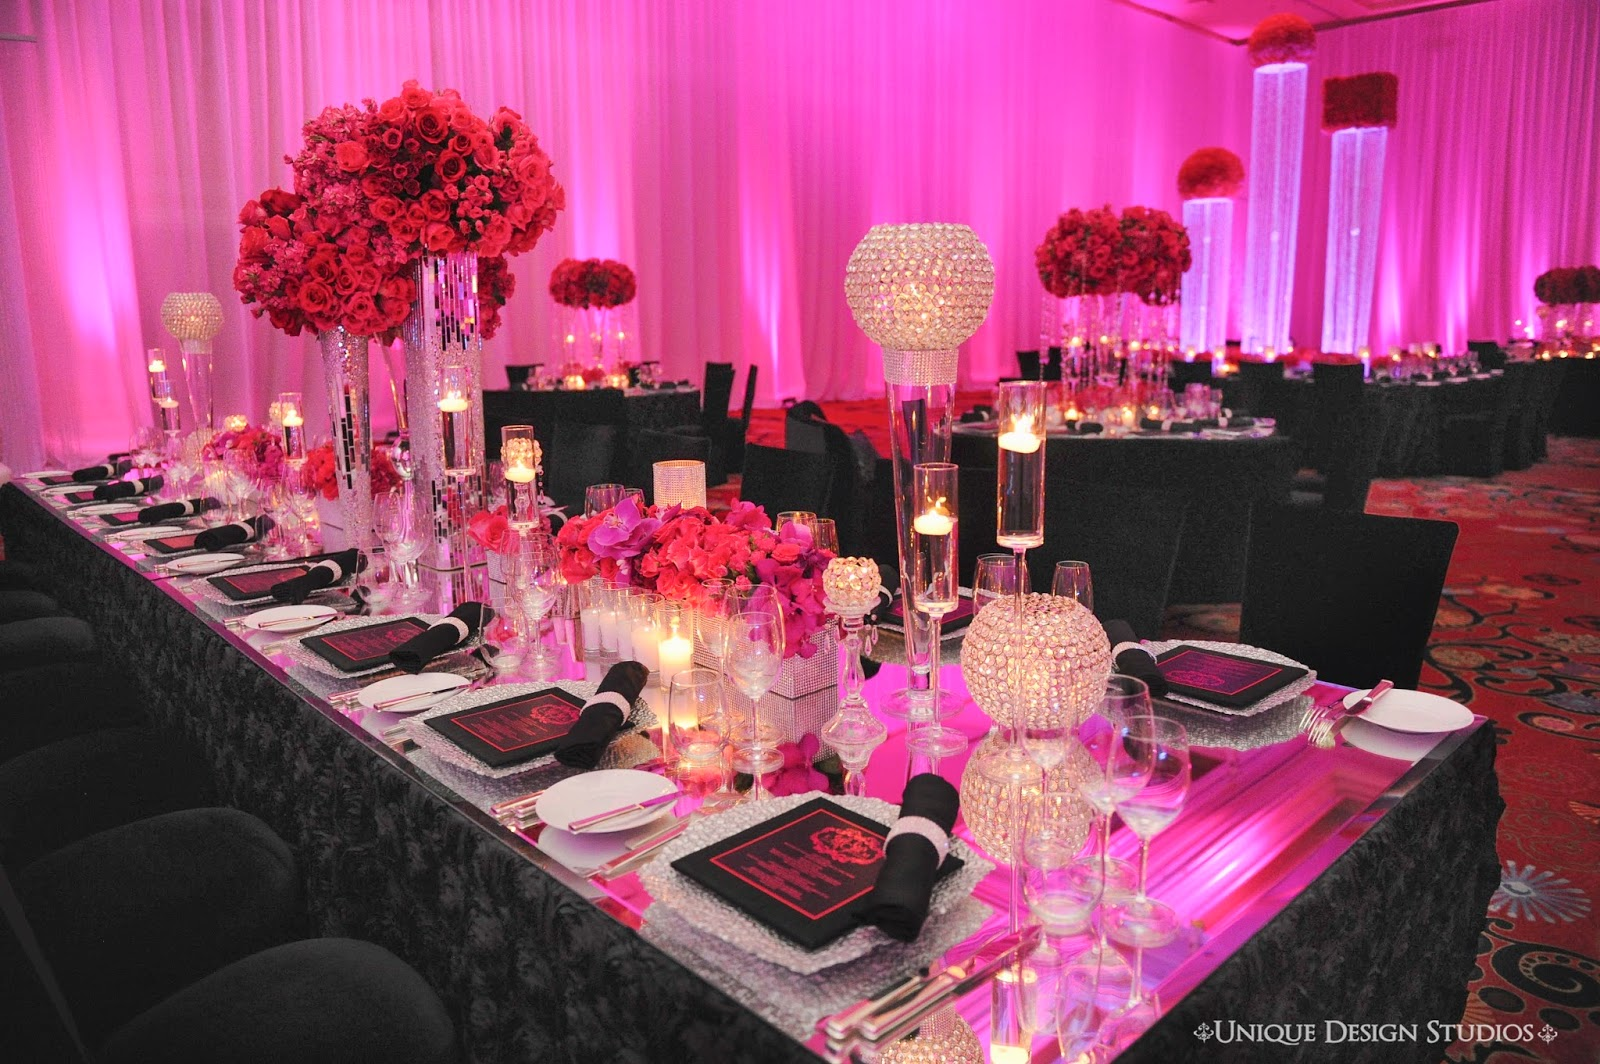 This Striking Las Vegas Destination Wedding Reception Table Designed By Platinum Weddings Designer Tiffany Cook Used A Gorgeous Black Textured